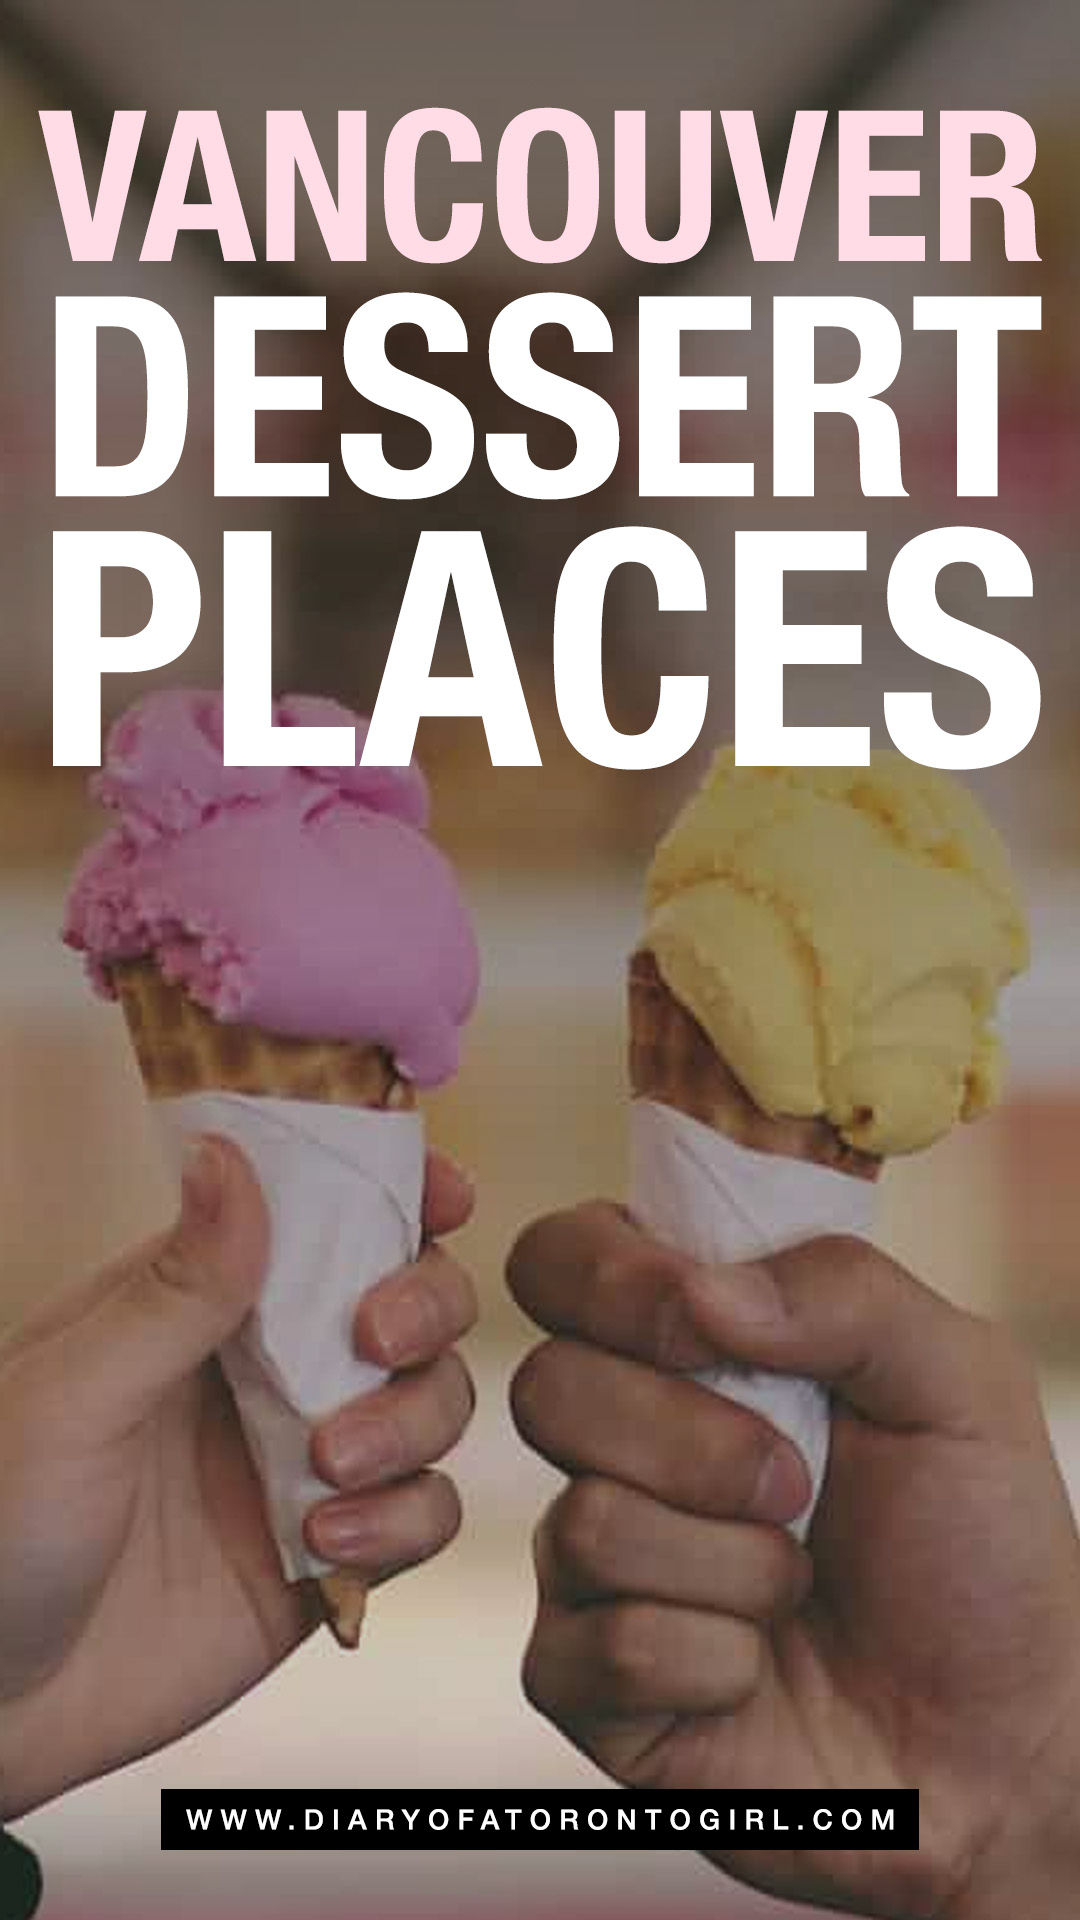 The best dessert places in Vancouver, including everything from fresh scoops of unique ice cream flavours to decadent and handcrafted doughnuts!